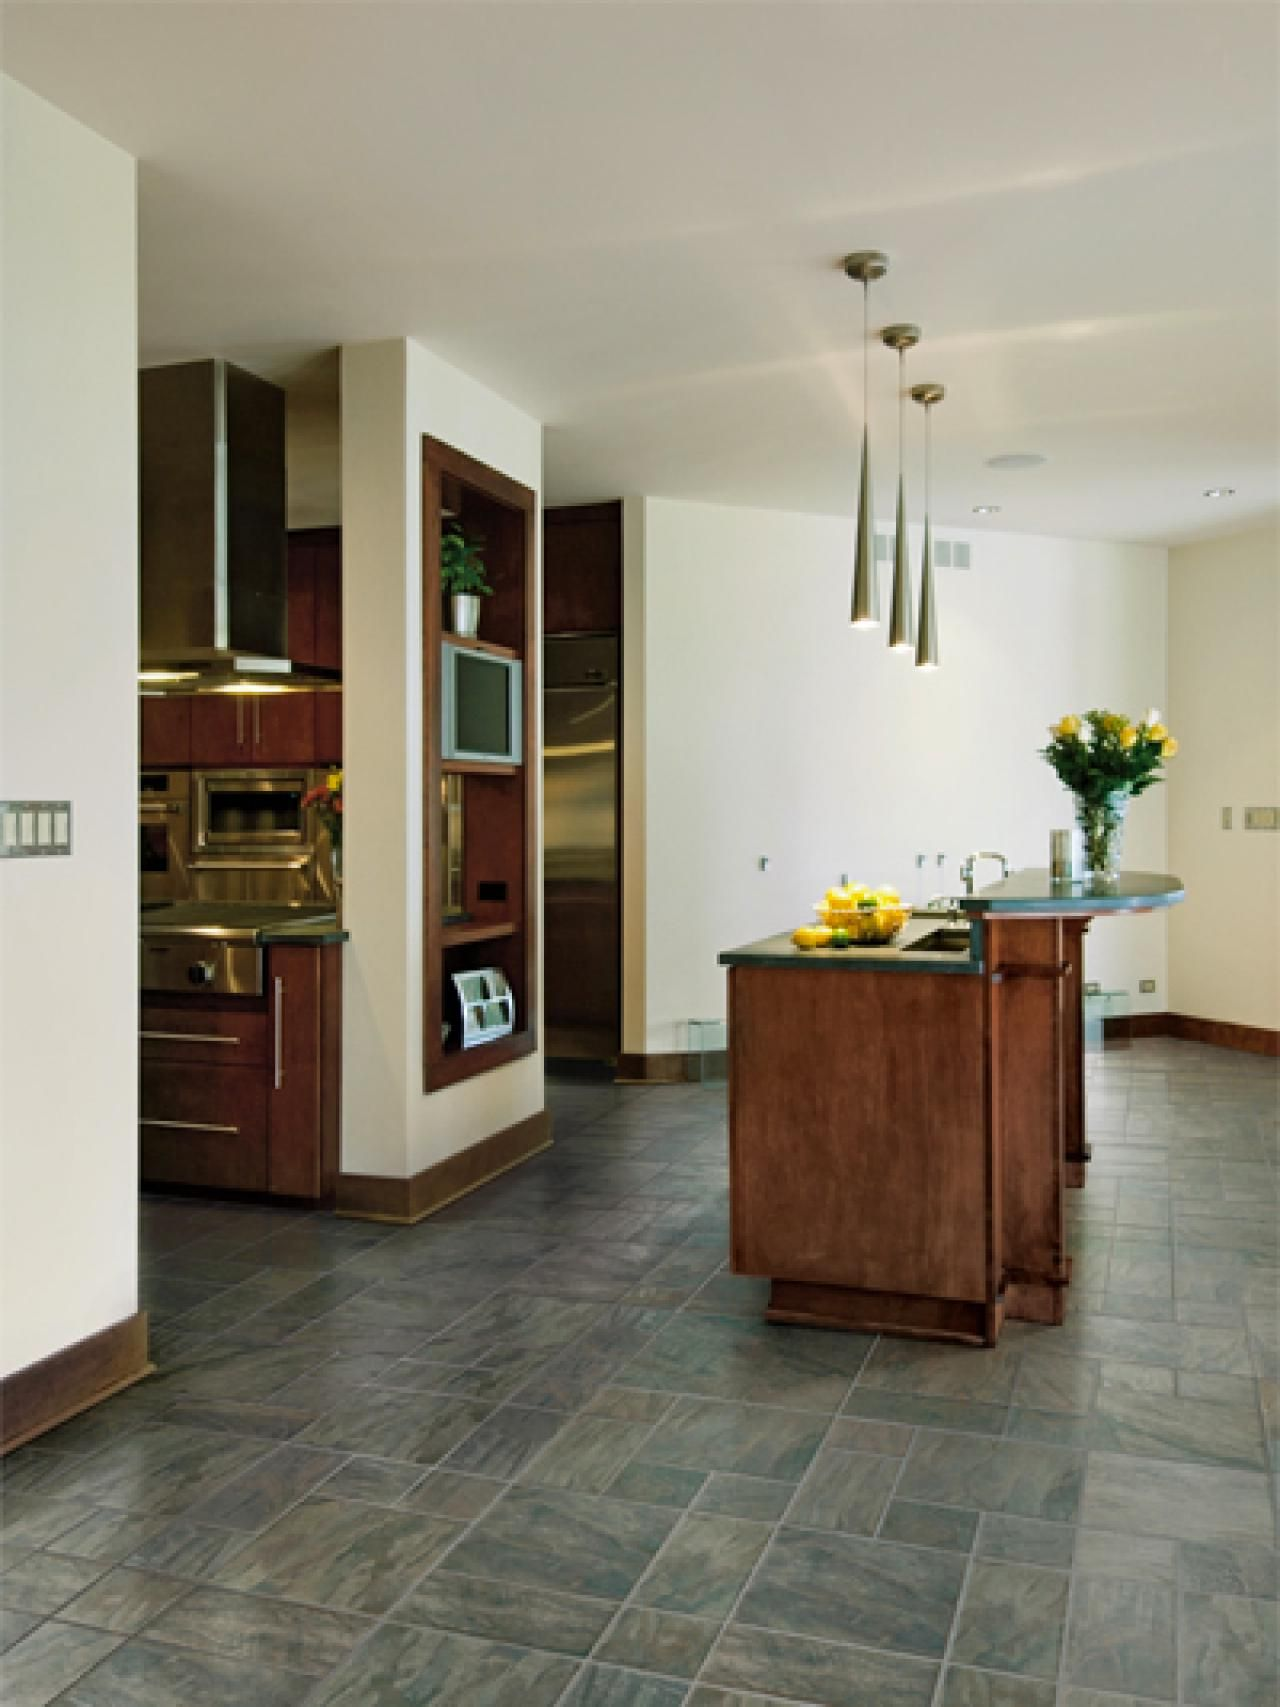 Basement Floor Epoxy And Sealer Basement Flooring Flooring - Flooring options for basements that get water